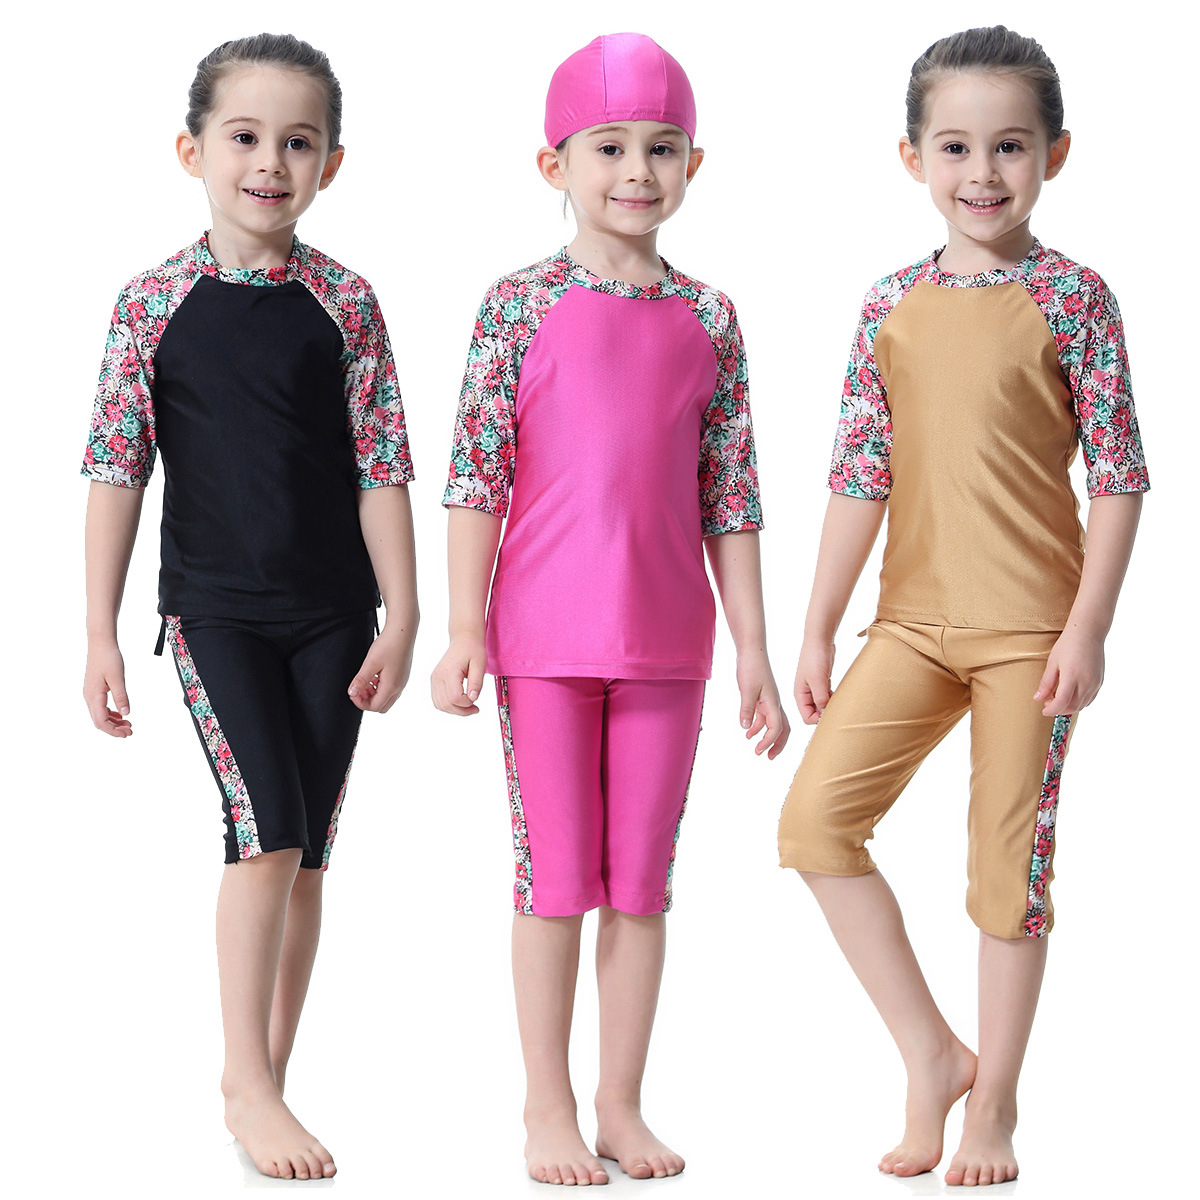 Muslim Swimsuit Sunscreen Breathable Islamic Girls Children Swimwear Modest Arab Islam Swimwear Beach Wear Girls Bathing Suit